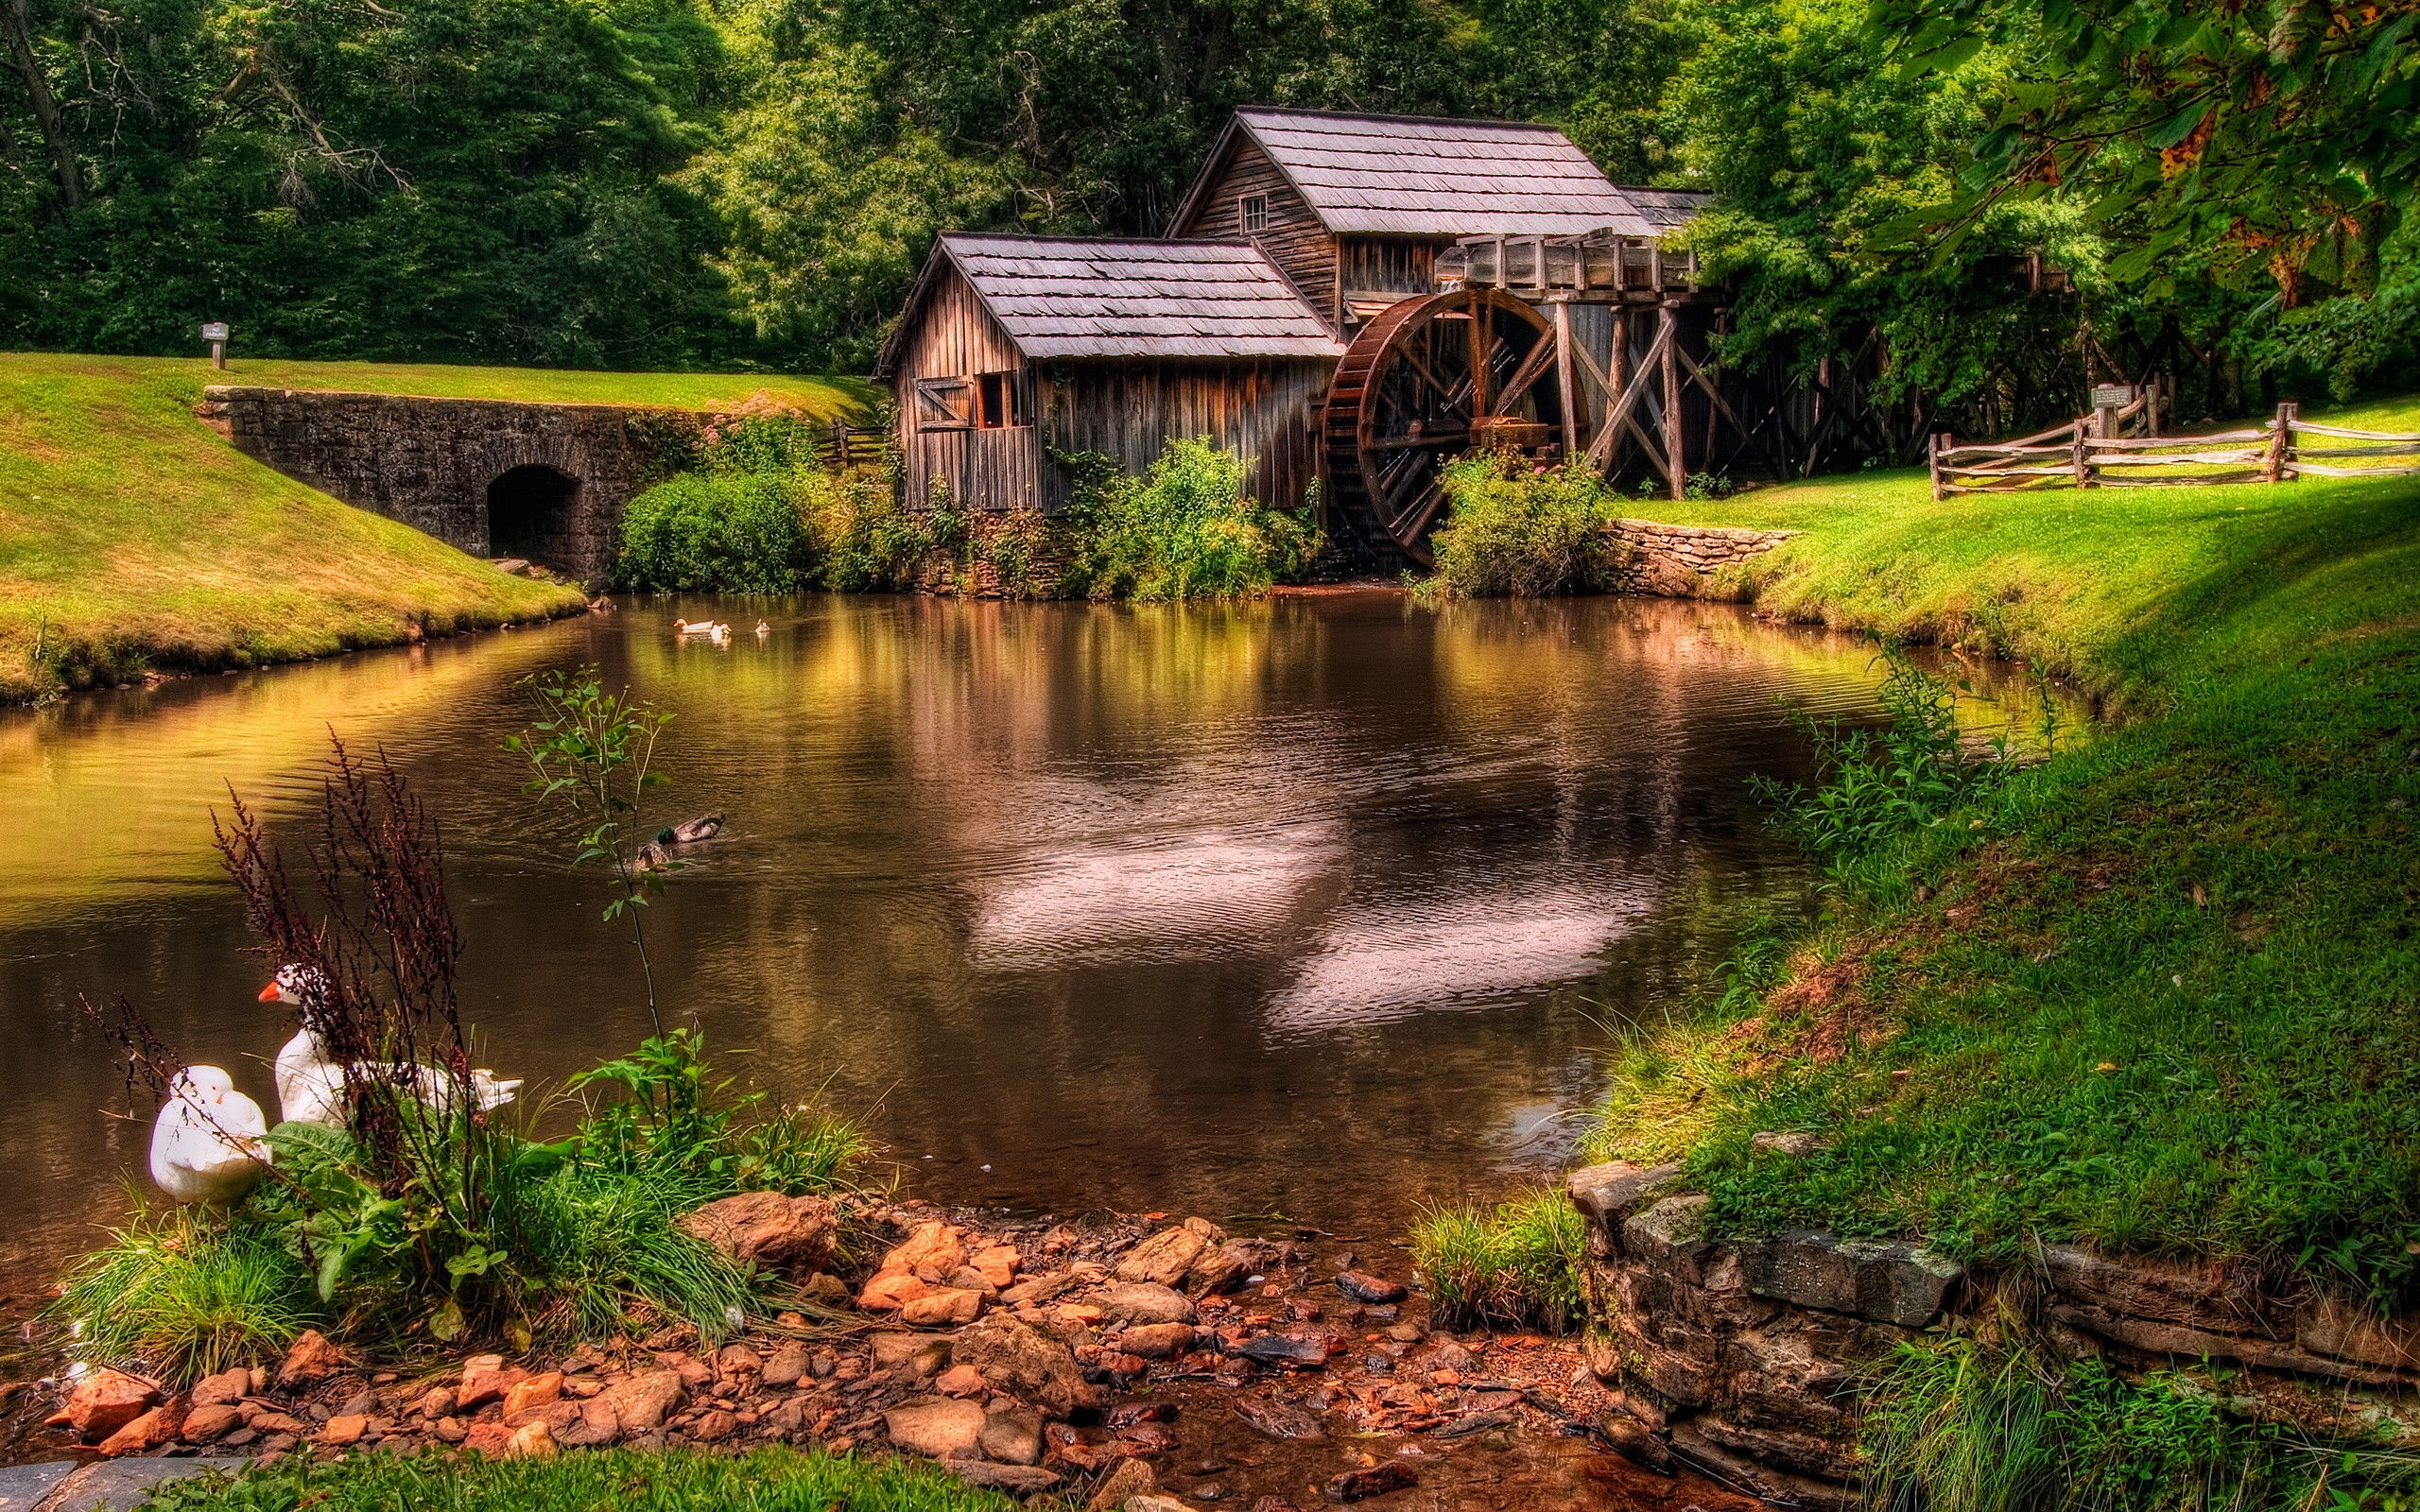 Mill Wallpaper Old Mill iPhone Wallpaper Old Mill Android Wallpaper 2560x1600